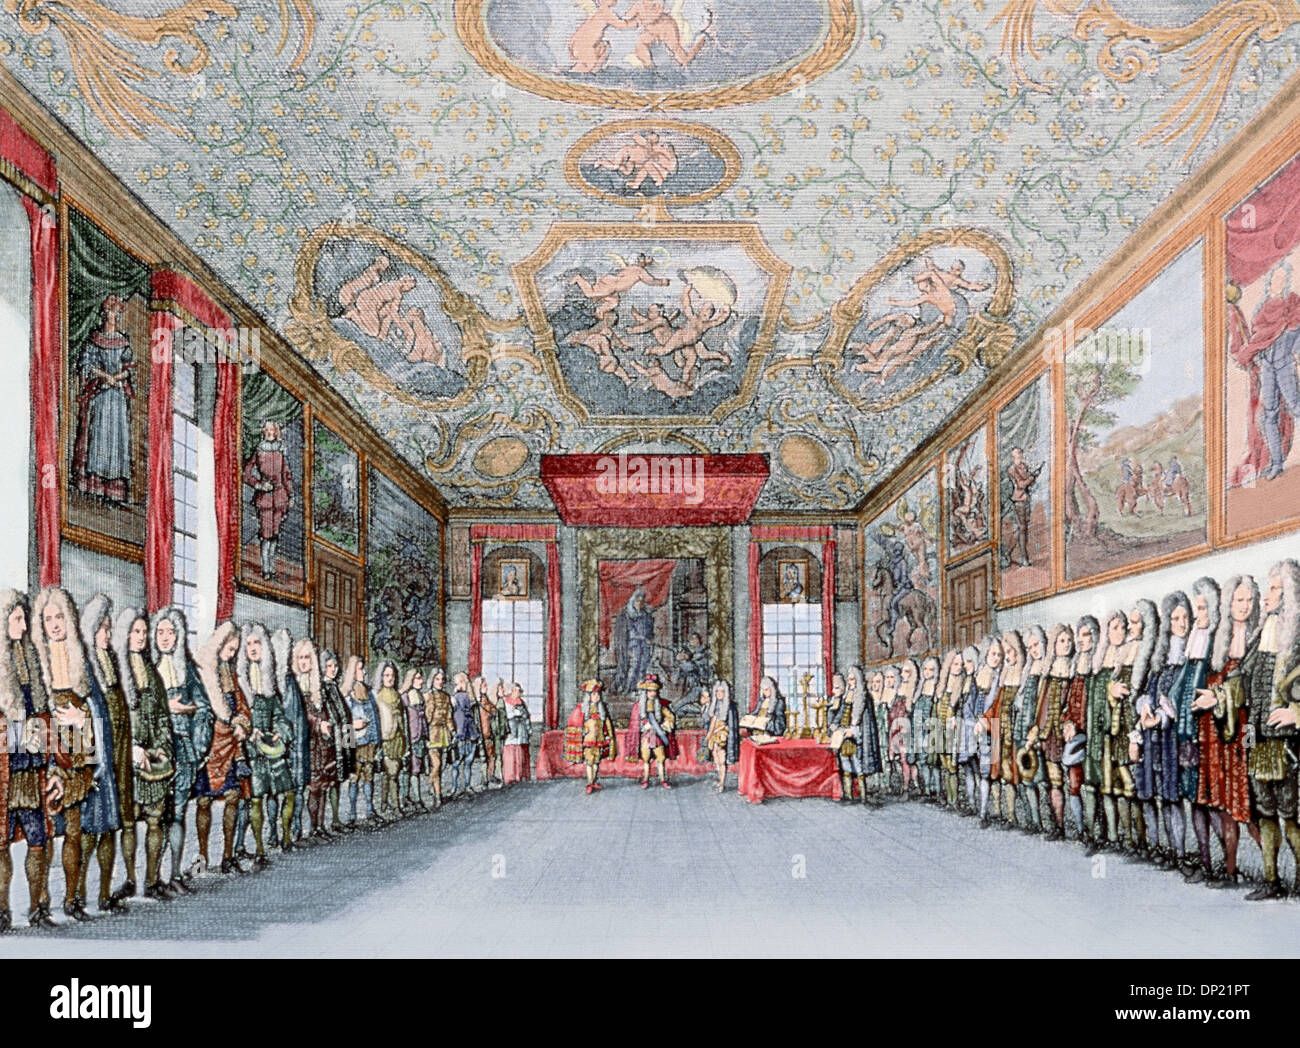 Charles VI of Habsburg (1685-1740), Holy Roman Emperor (1711-1740). Proclamation of the Archduke Charles as king of Spain, 1706. - Stock Image